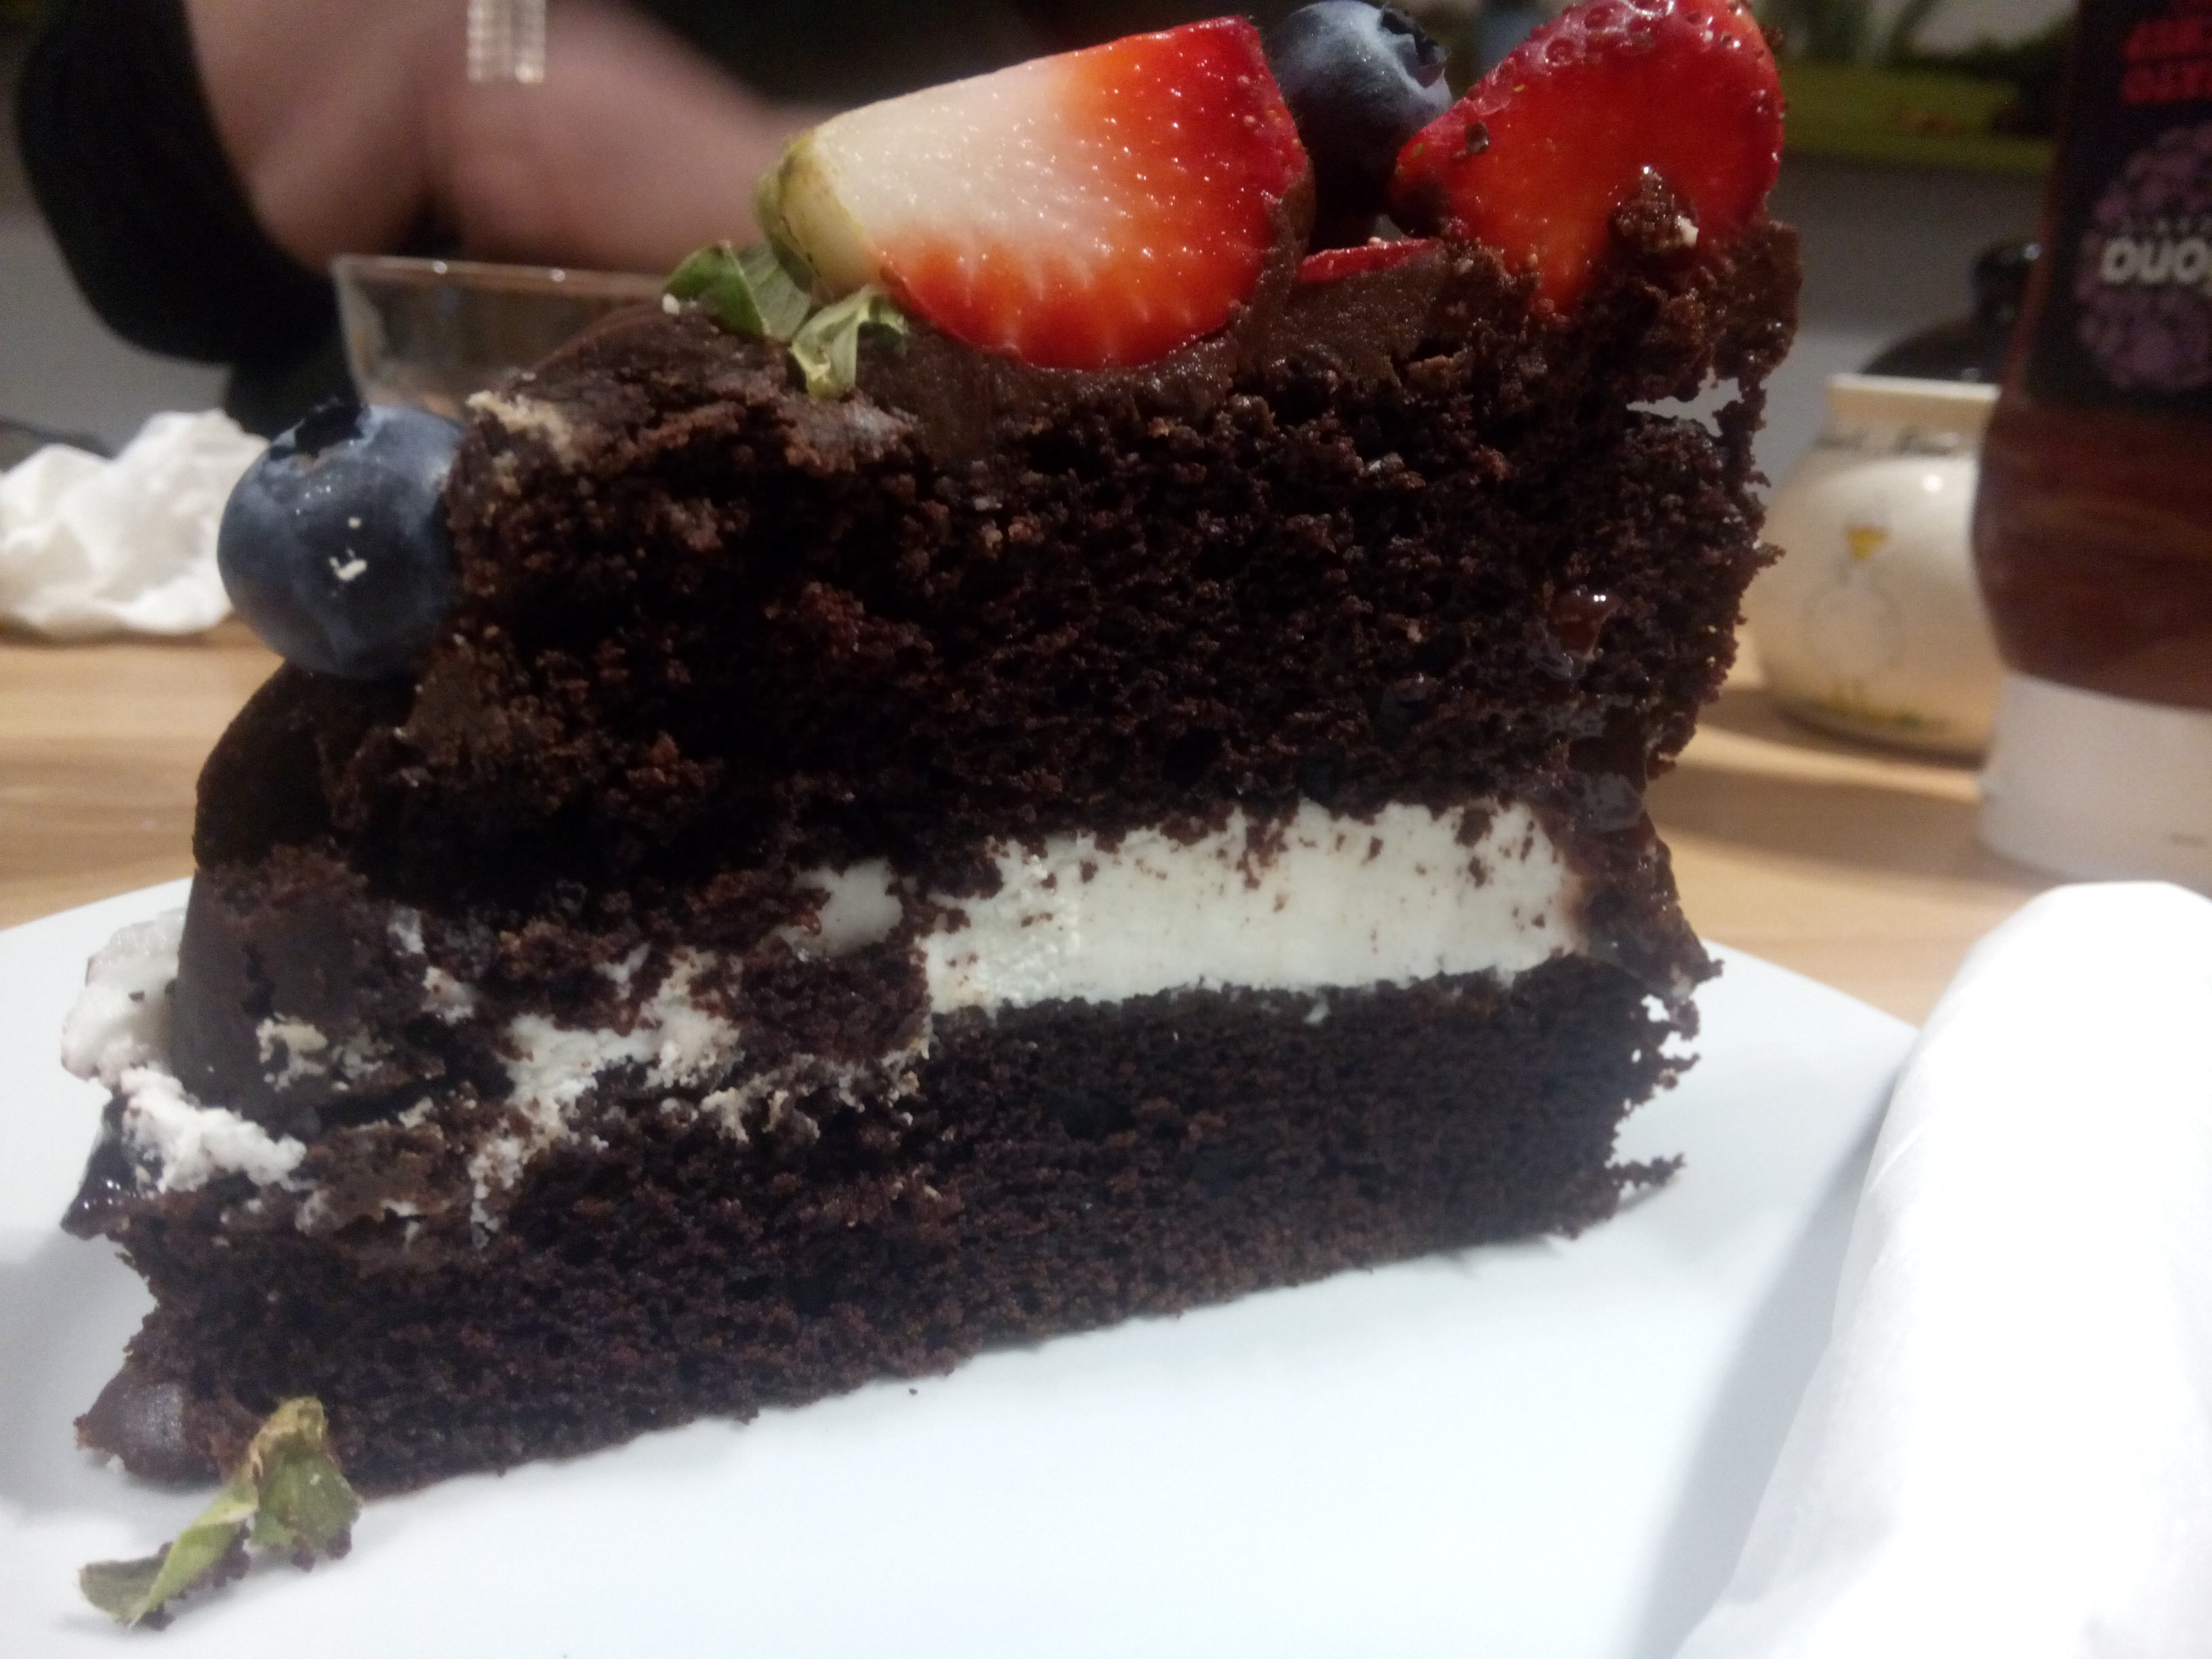 Chocolate cake with white cream in the middle and strawberries and blueberries on top